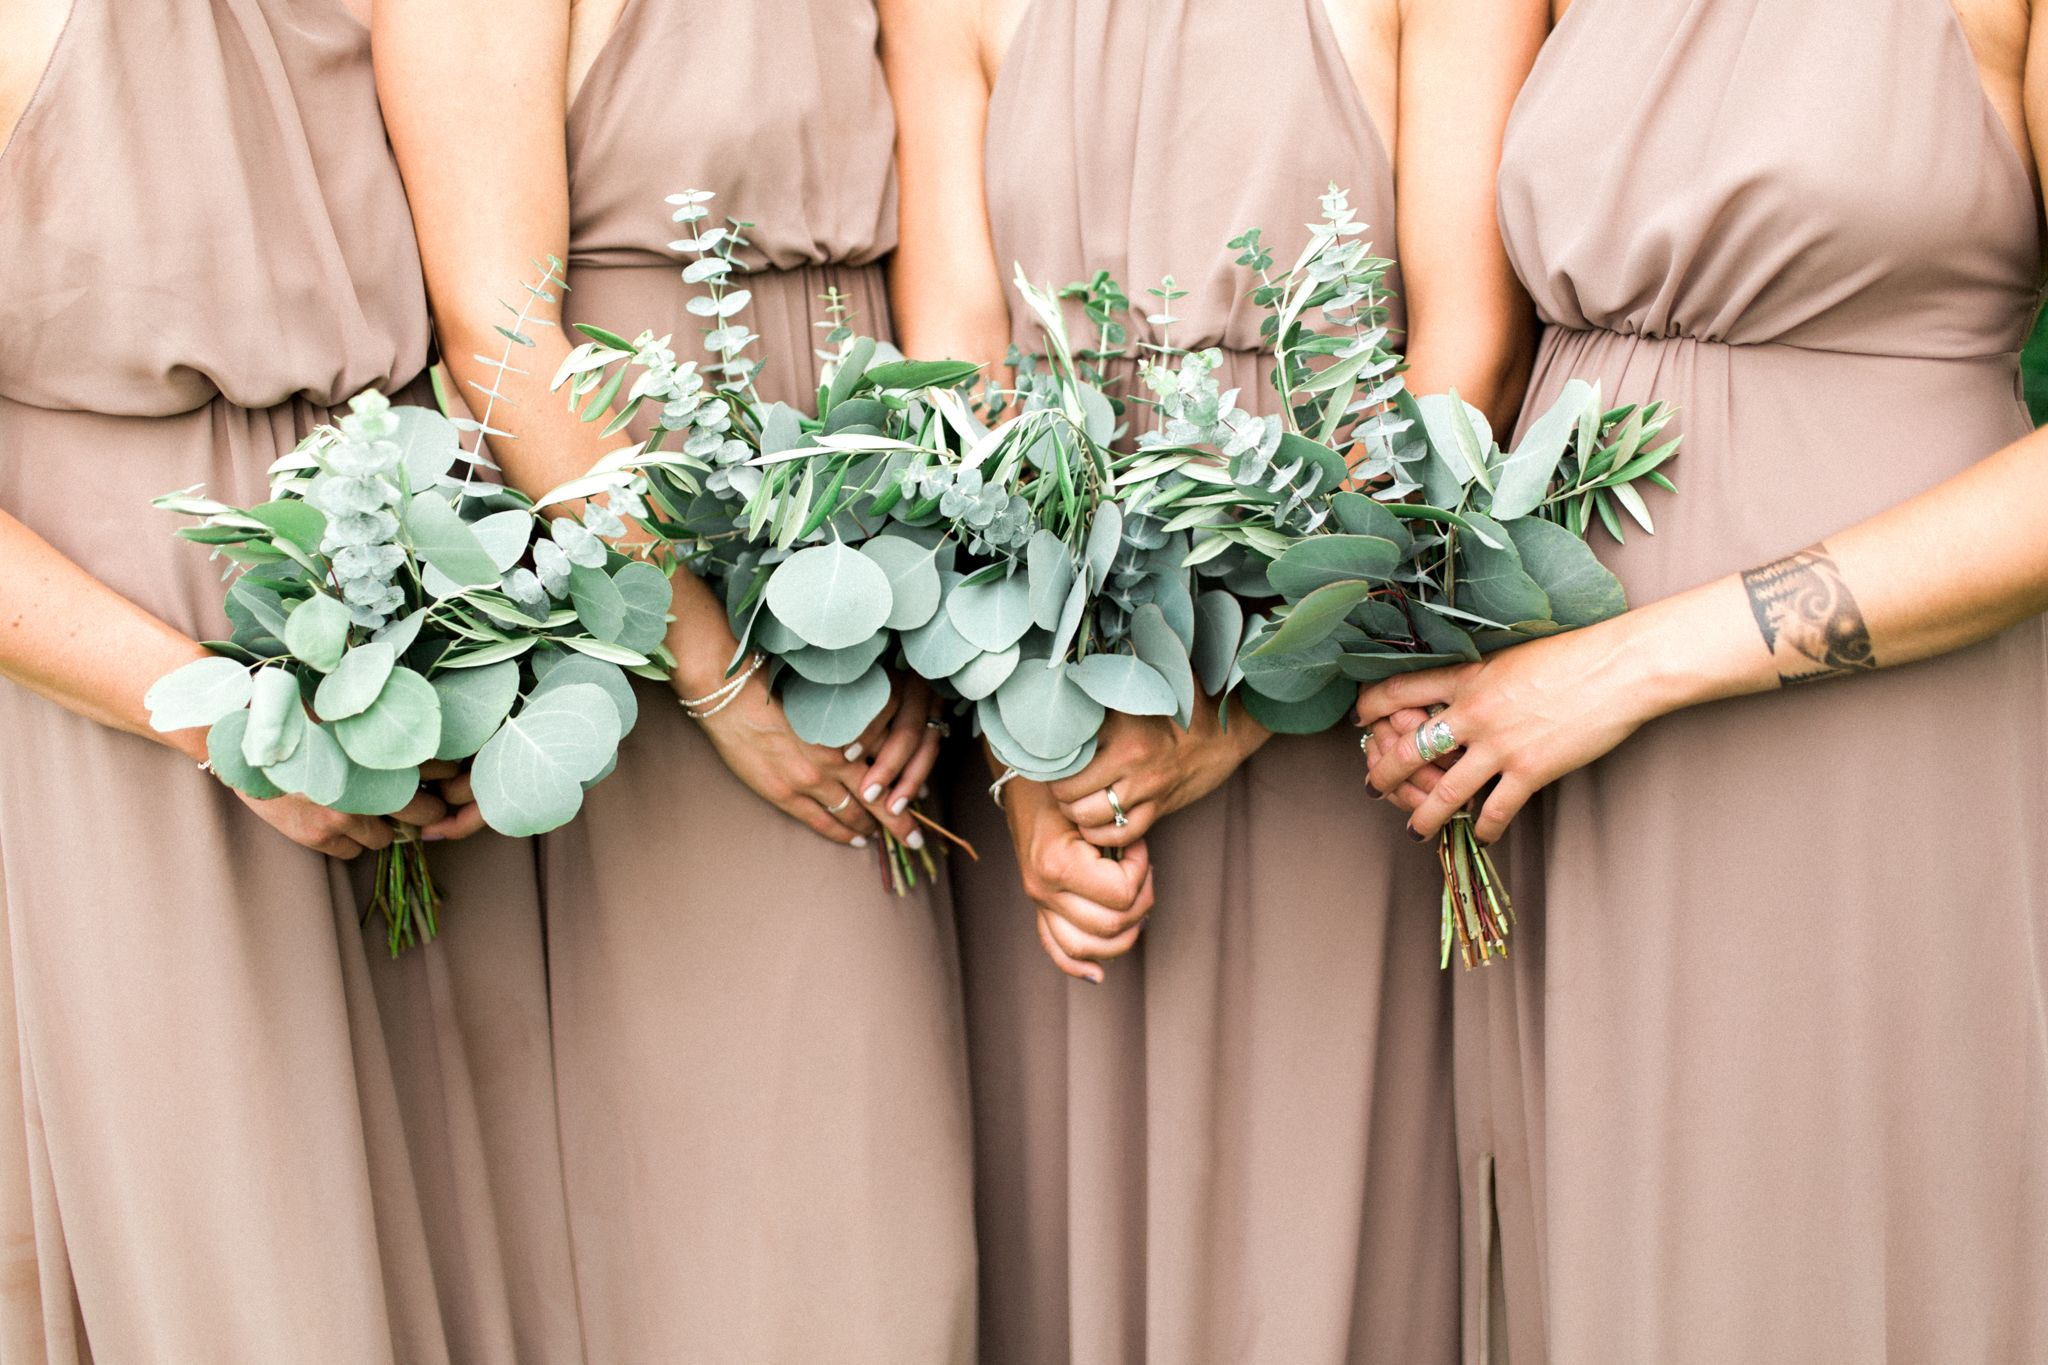 Eucalyptus wedding bouquet with light tan/neutral bridesmaid dresses. Michigan greenery wedding bouquet made by Ludema's floral. #weddingbridesmaidbouquets